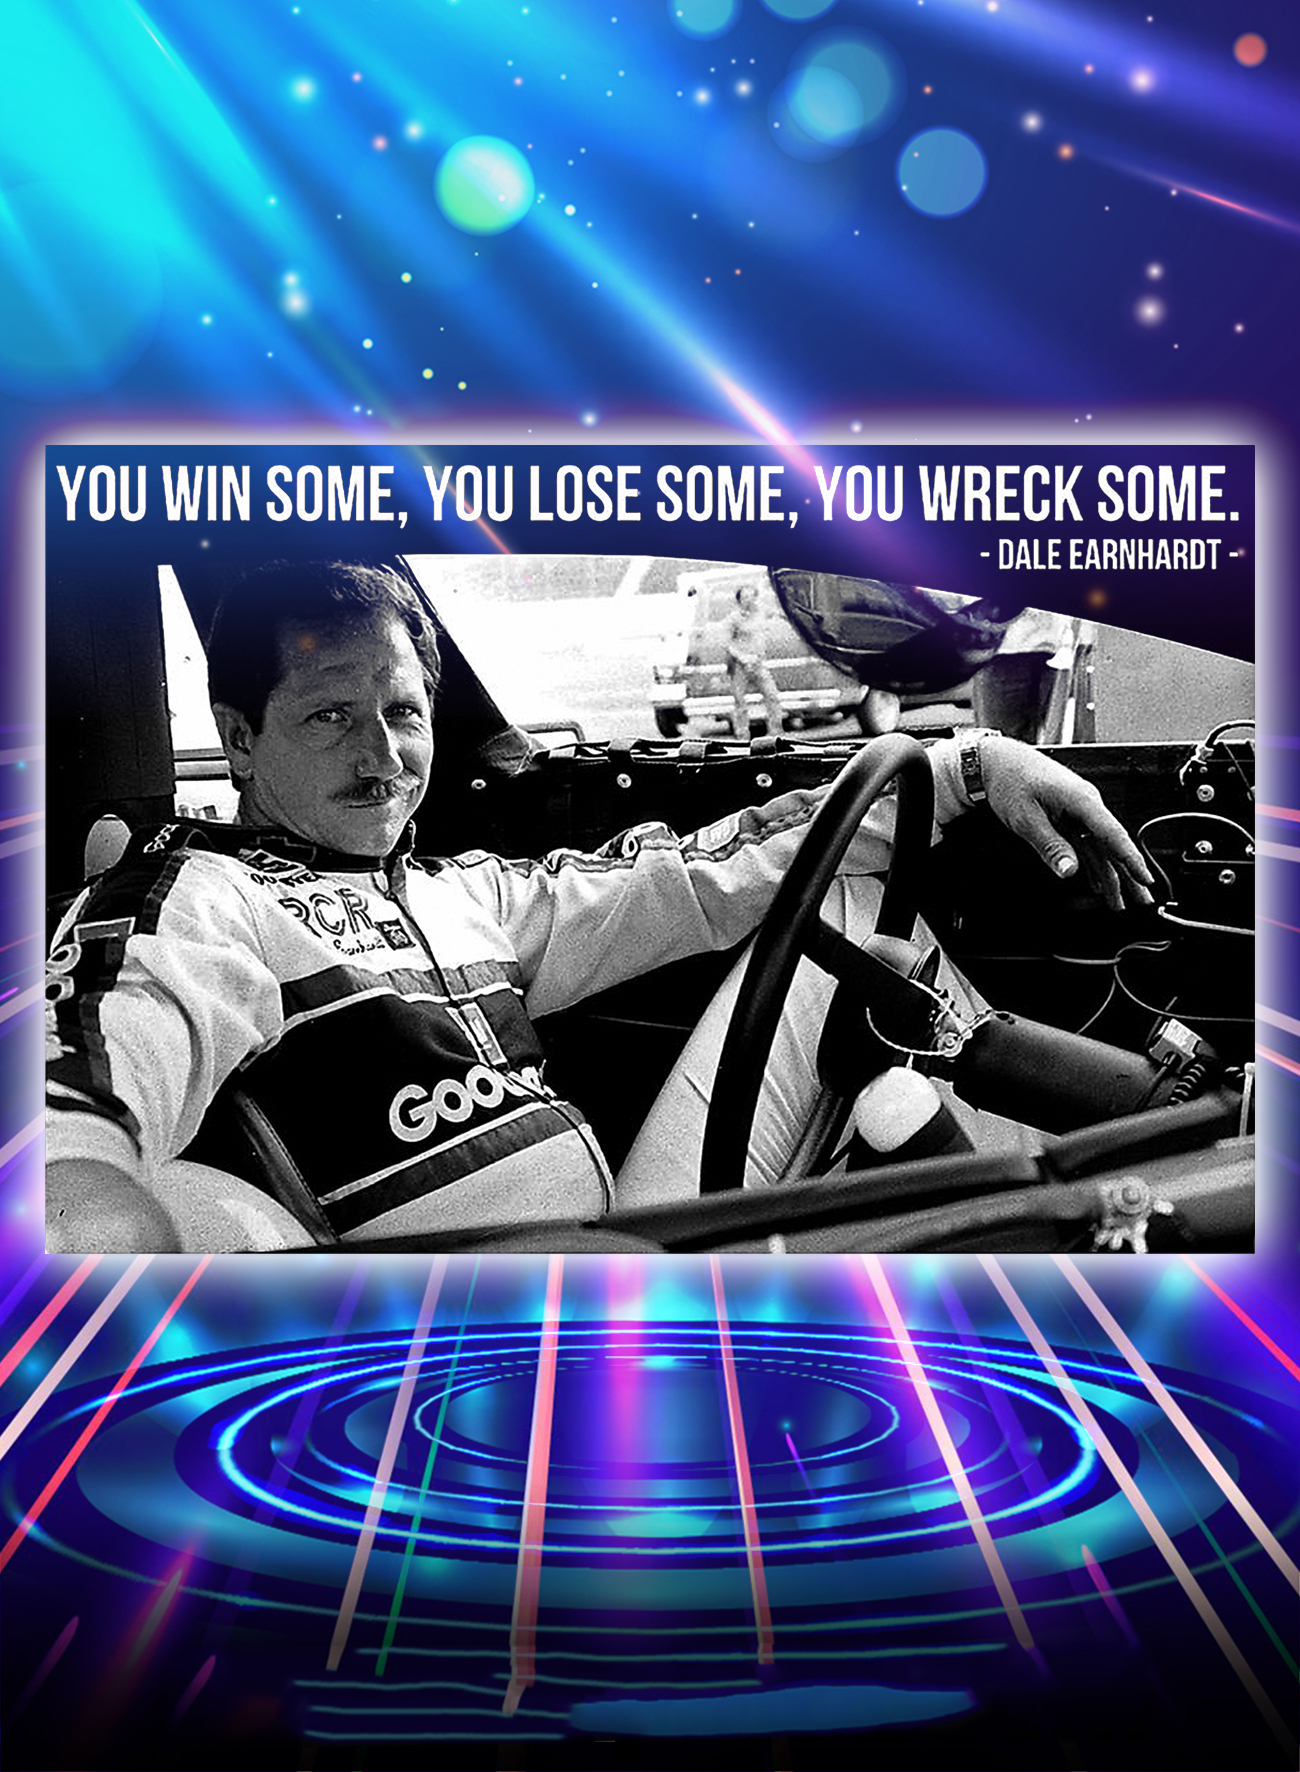 Dale earnhardt you win some you lose some you wreck some poster